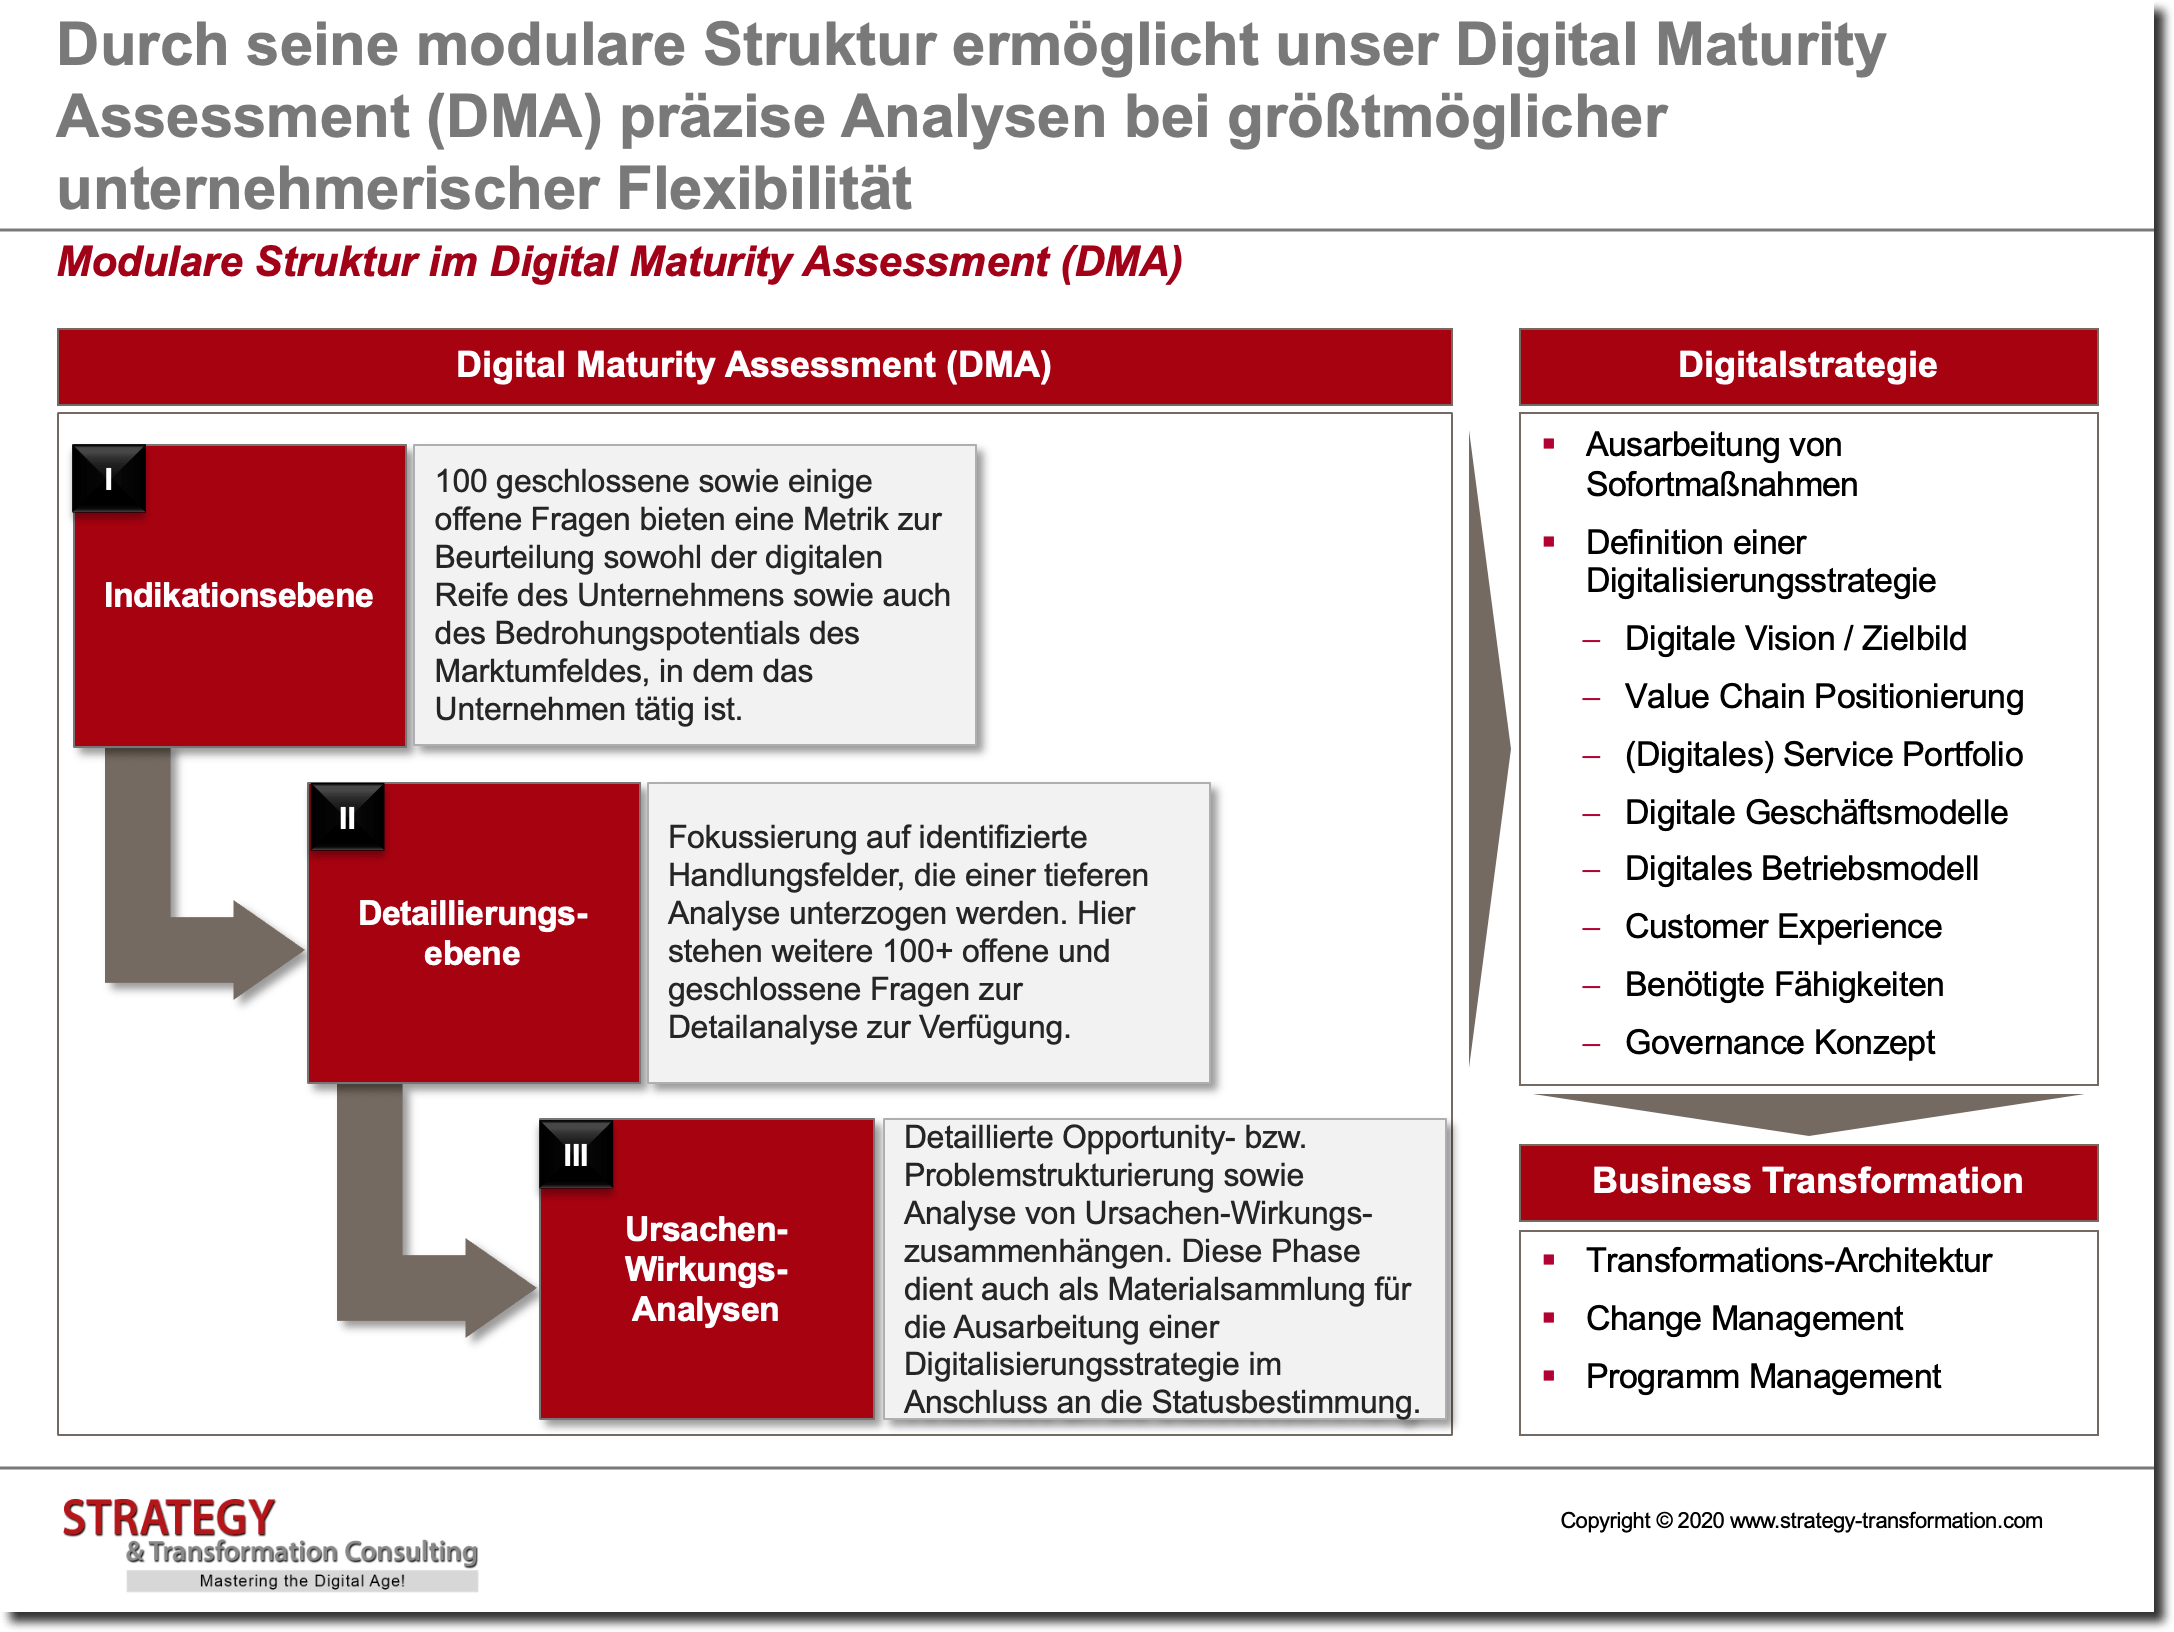 Modulare Struktur im Digital Maturity Assessment (DMA)